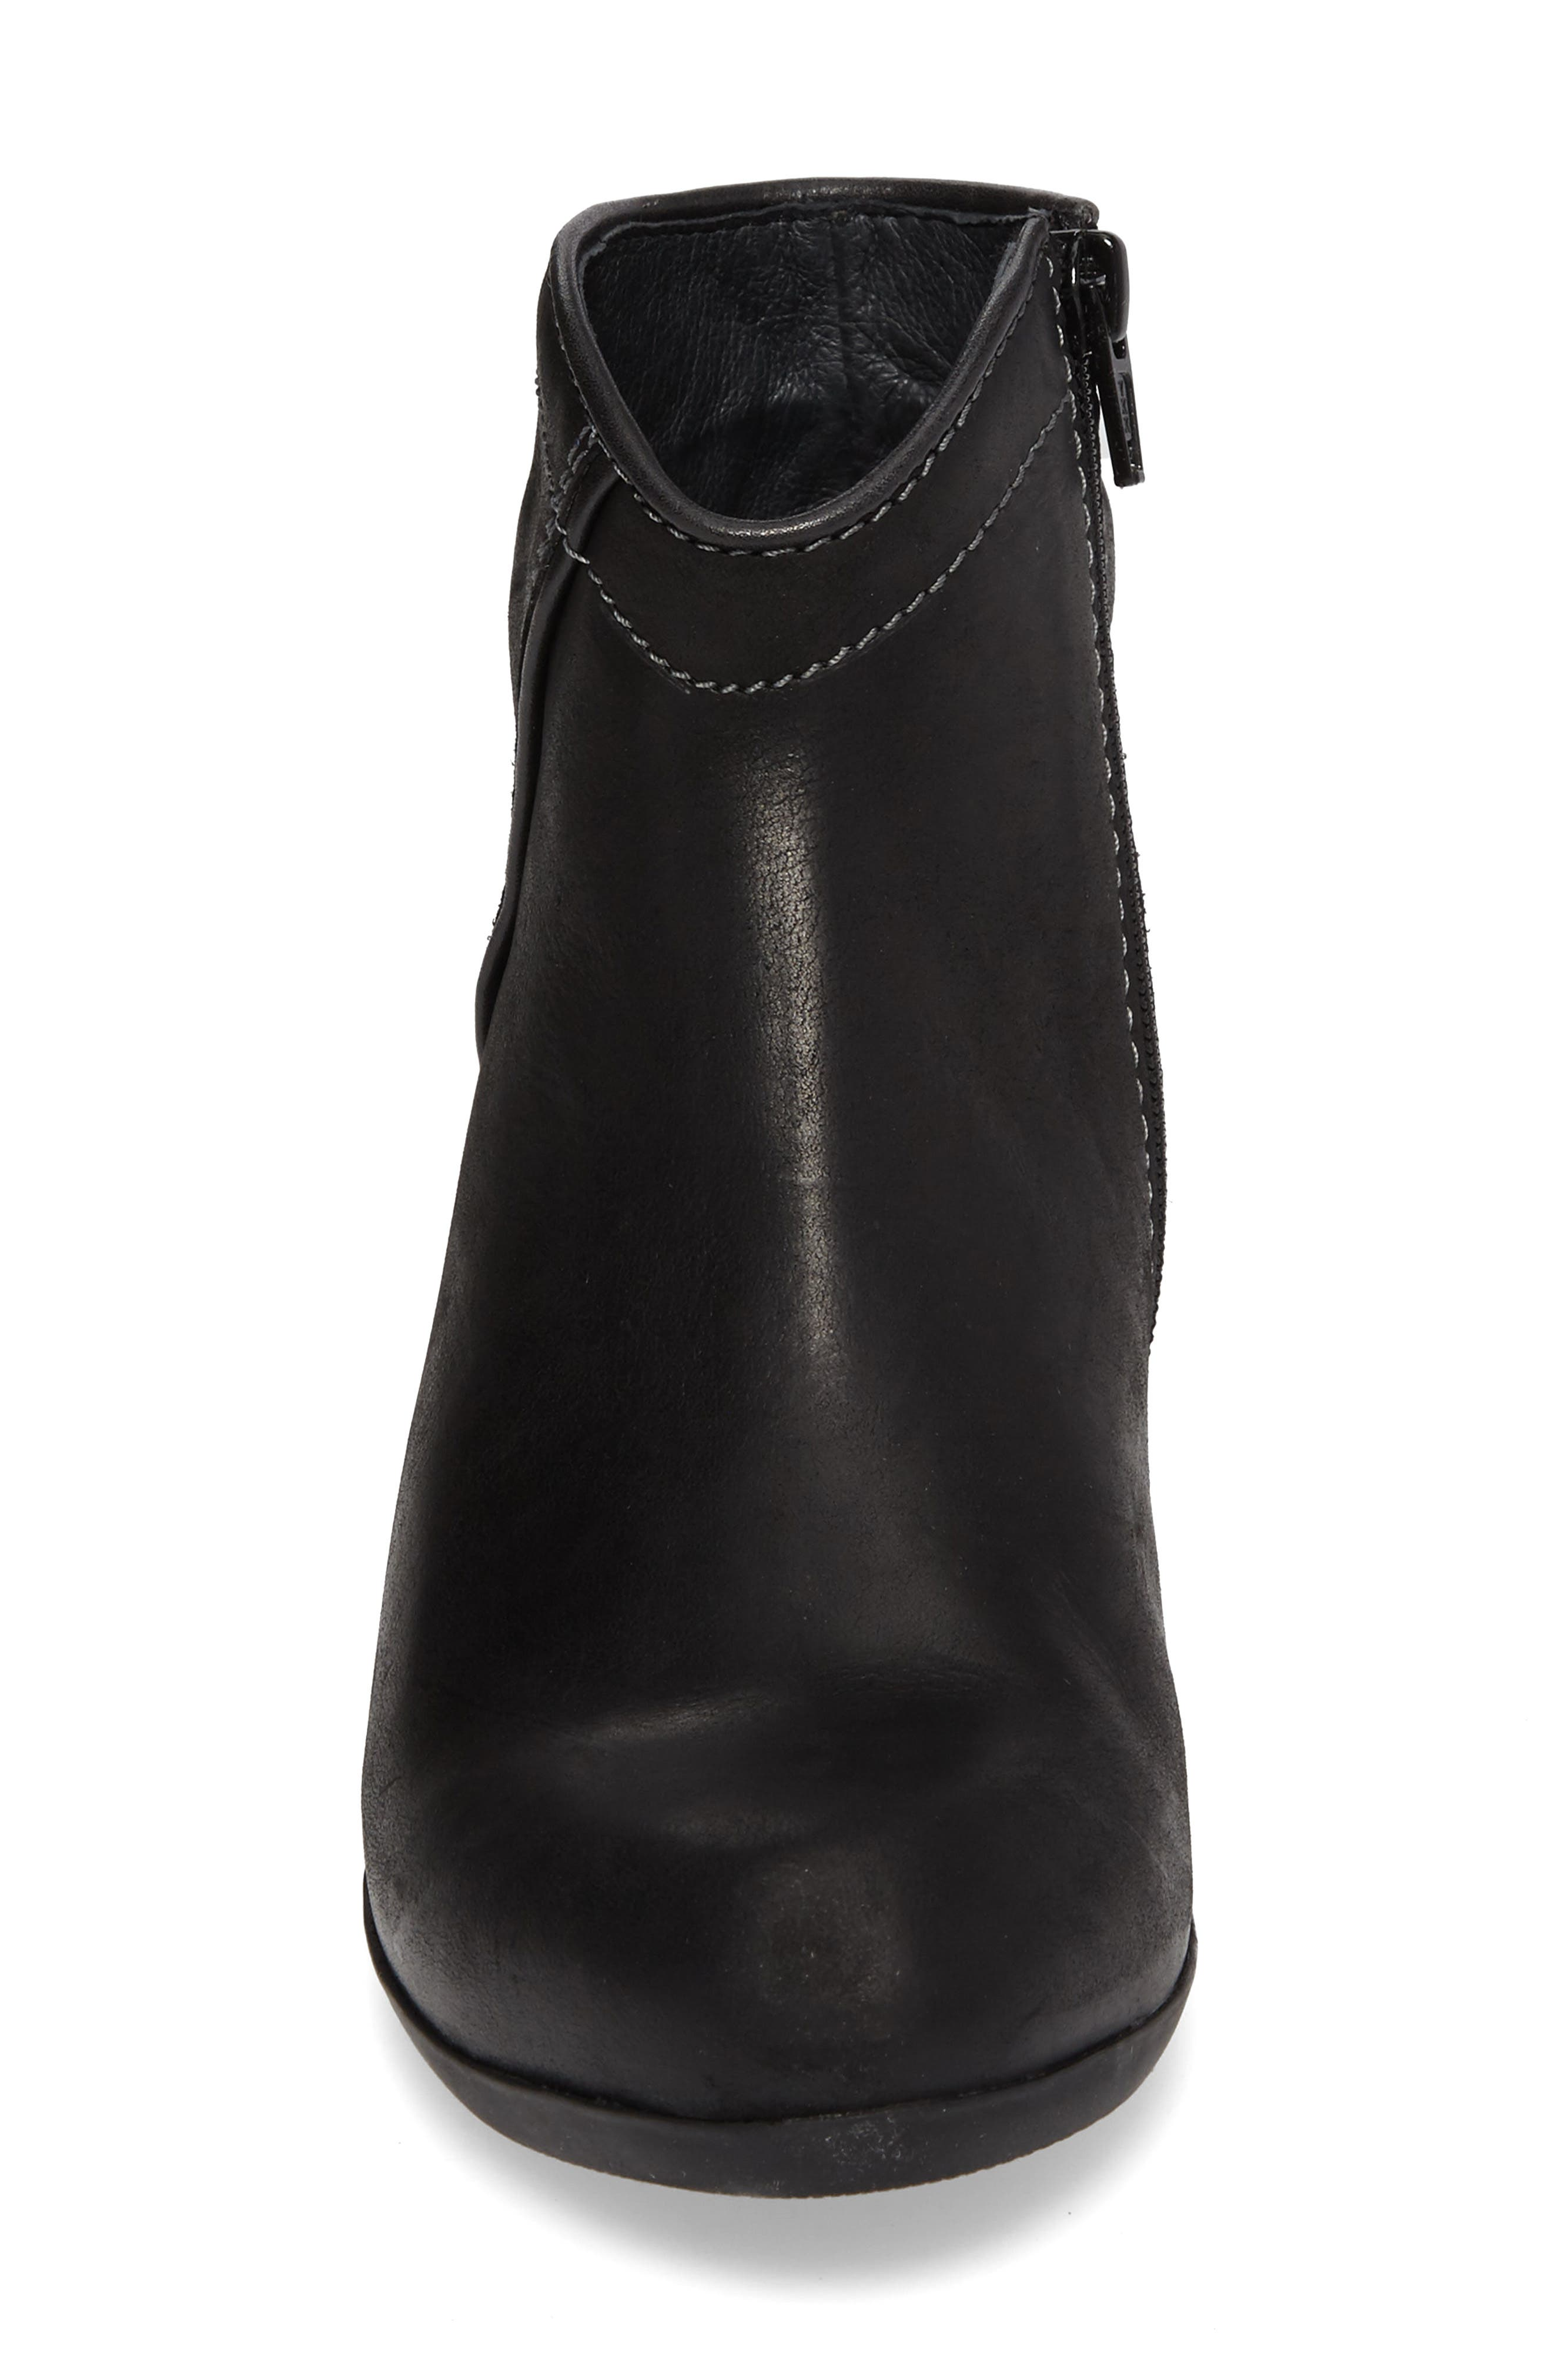 Winchester Bootie,                             Alternate thumbnail 4, color,                             001